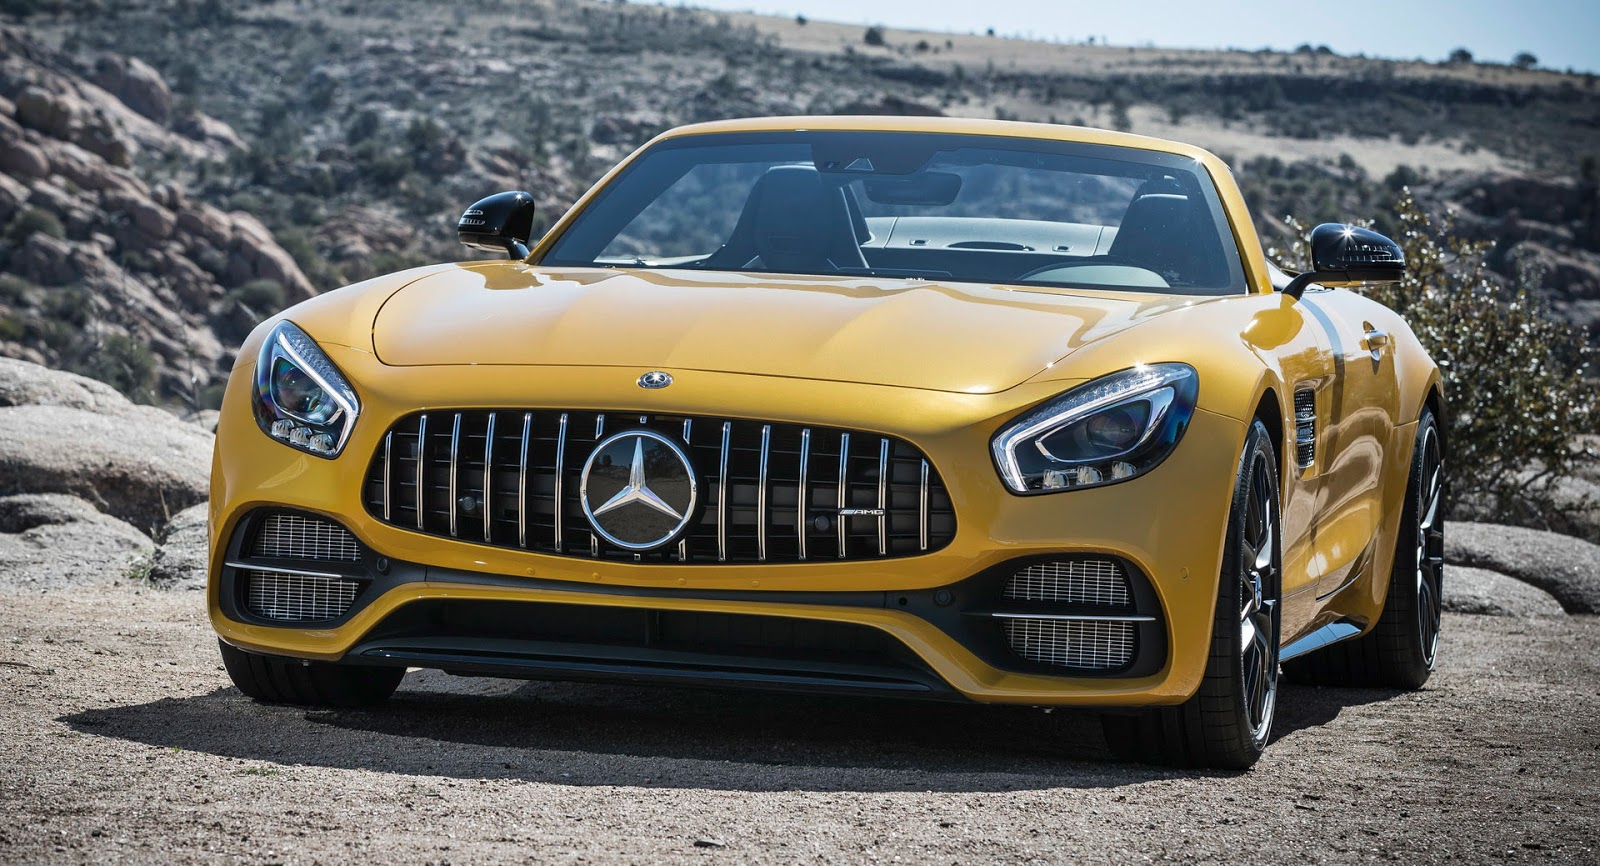 Mercedes Is Planning To Give The AMG GT A Mild Power Boost As Part Of Its  Scheduled Mid Life Facelift. The Facelift Will Introduce Minor Visual  Changes On ...